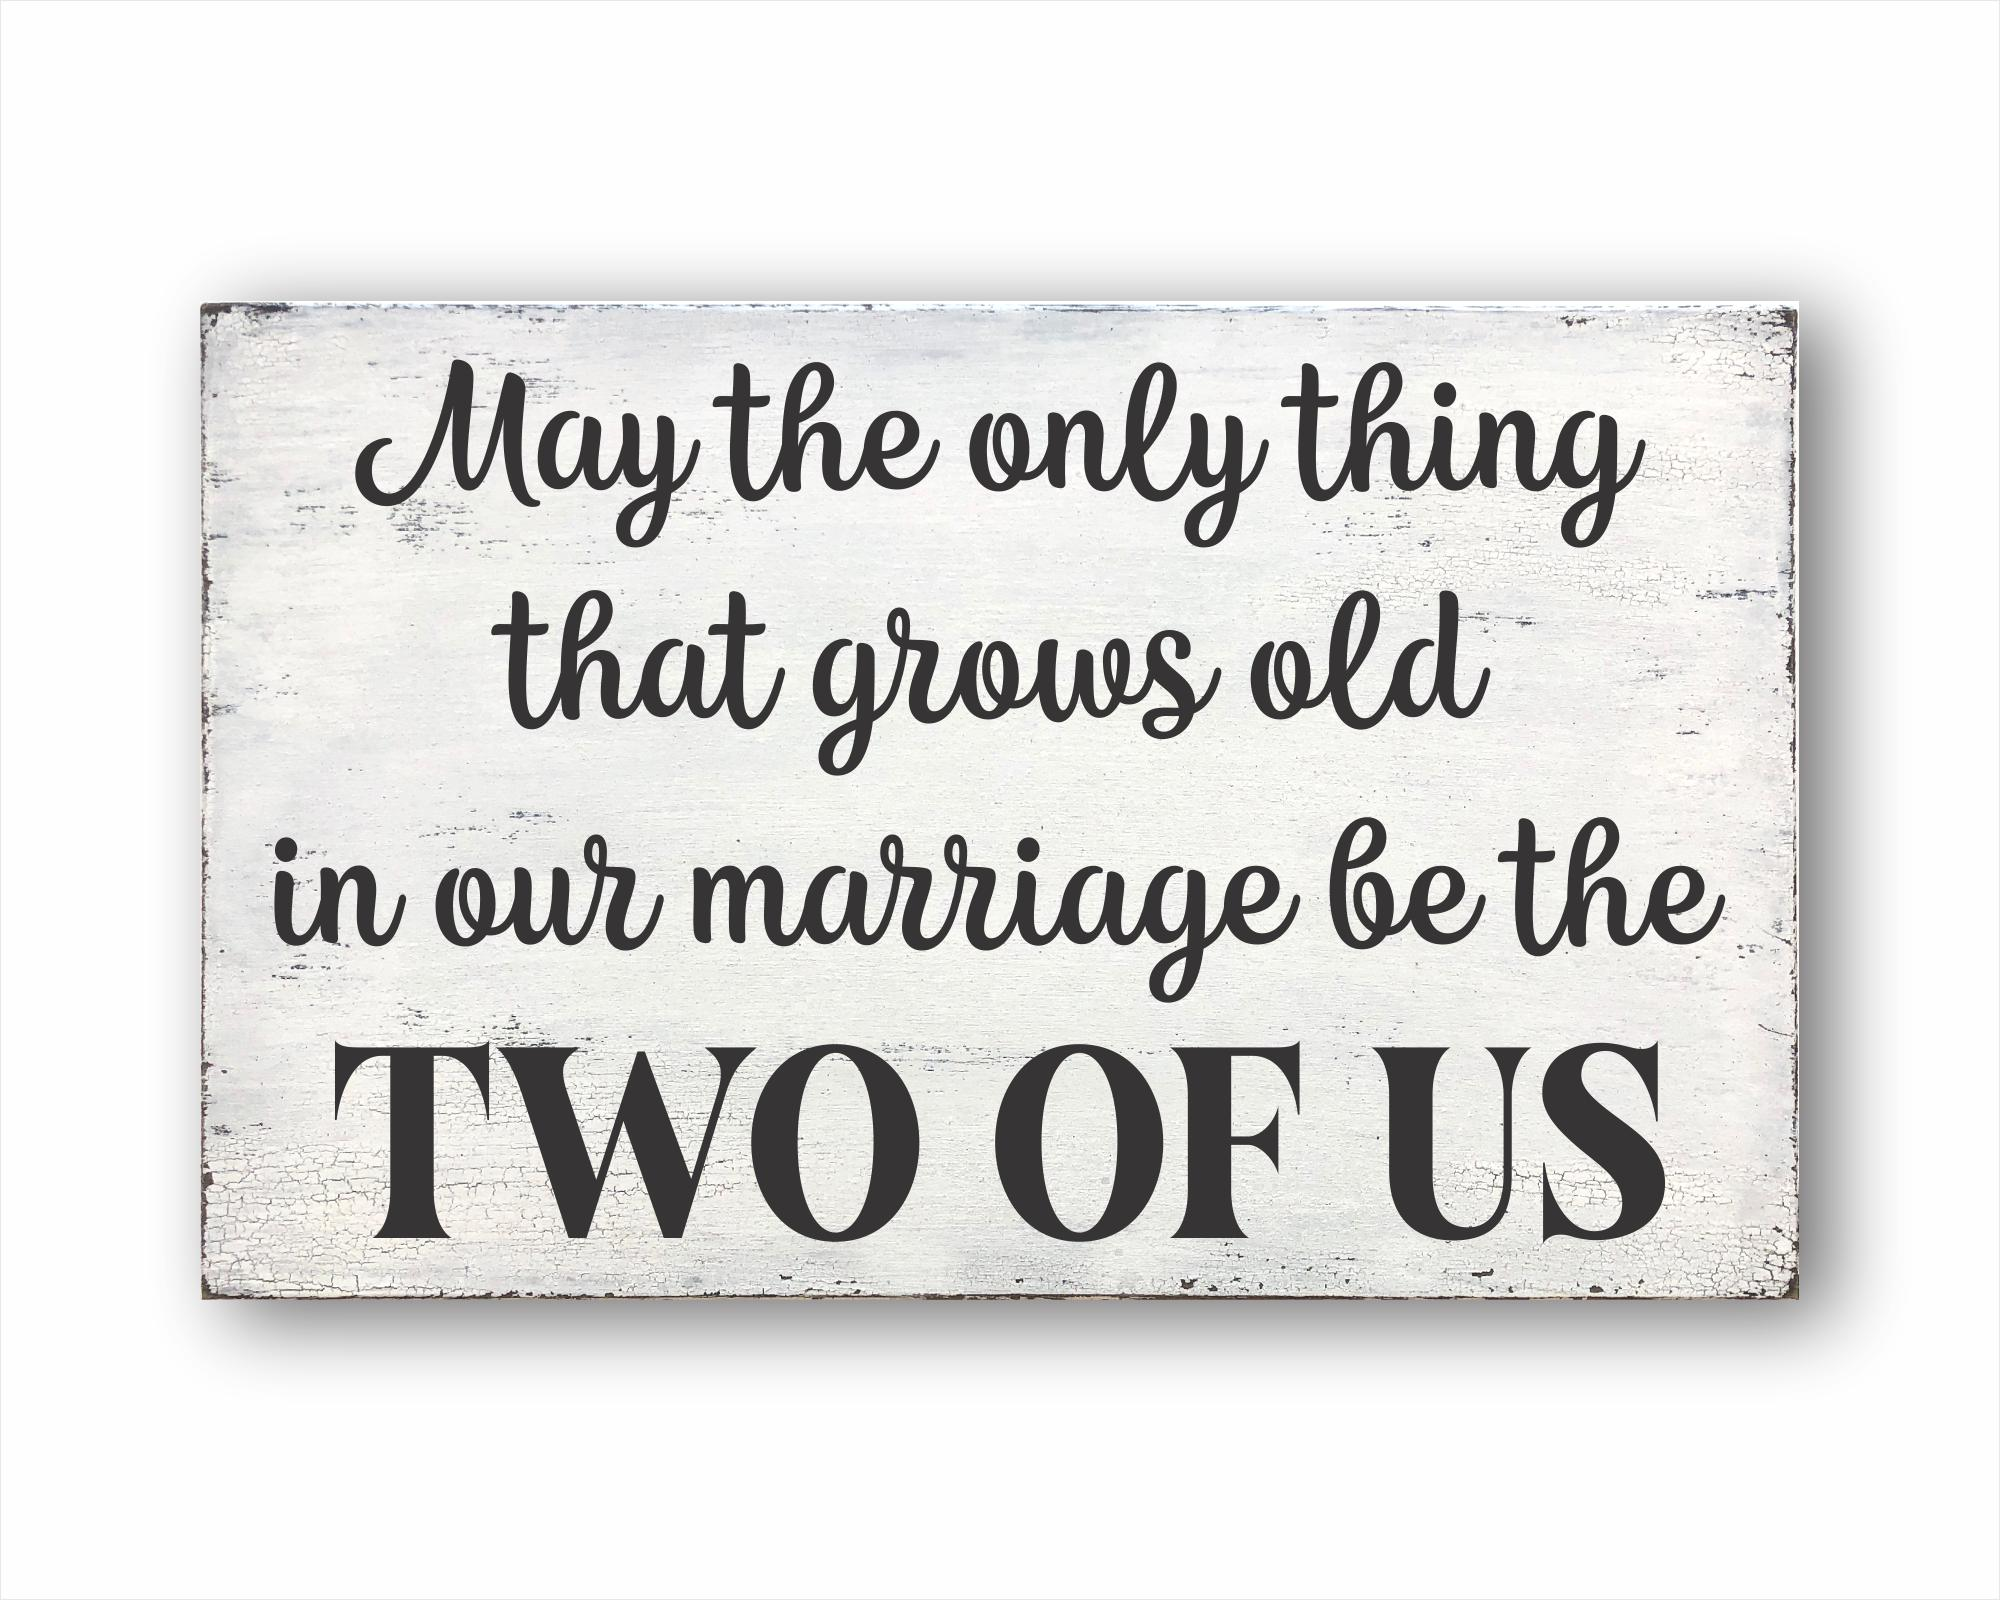 May The Only Thing That Grows Old In Our Marriage Be The Two Of Us: Rustic Rectangular Wood Sign